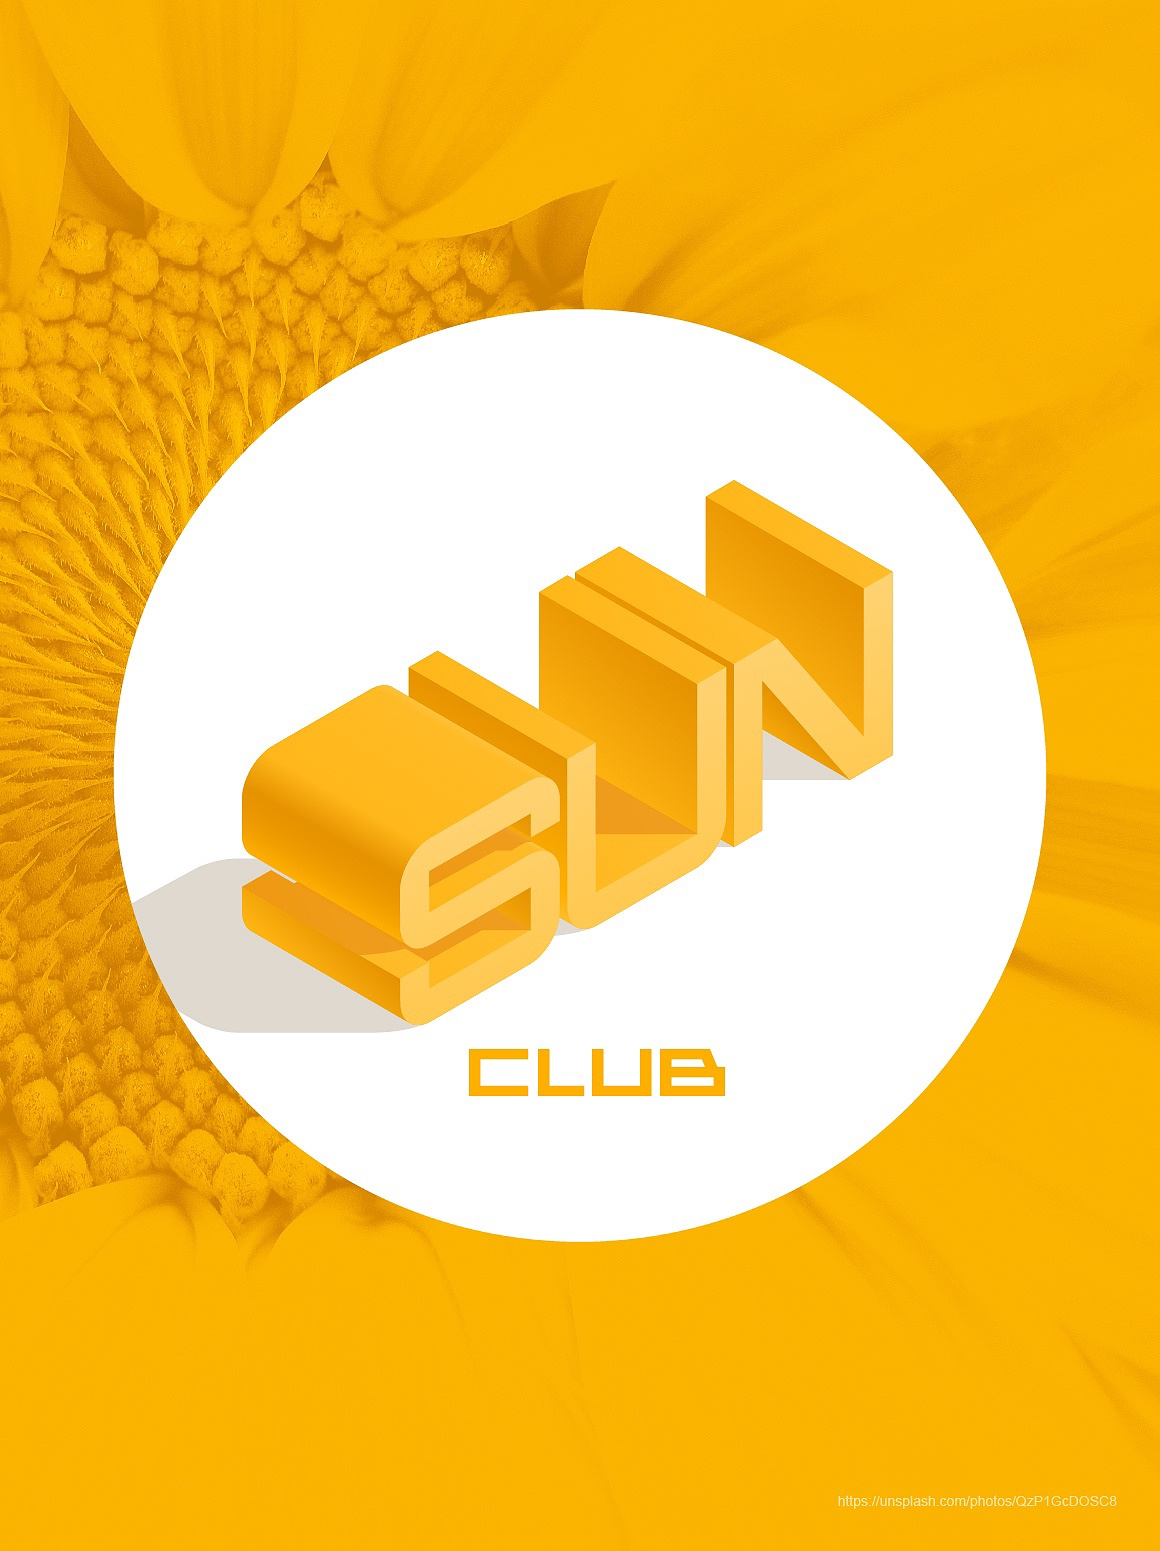 3D Isometric Typefaces images/3D-isometric-vector-typefaces-font-yellow_5.jpg